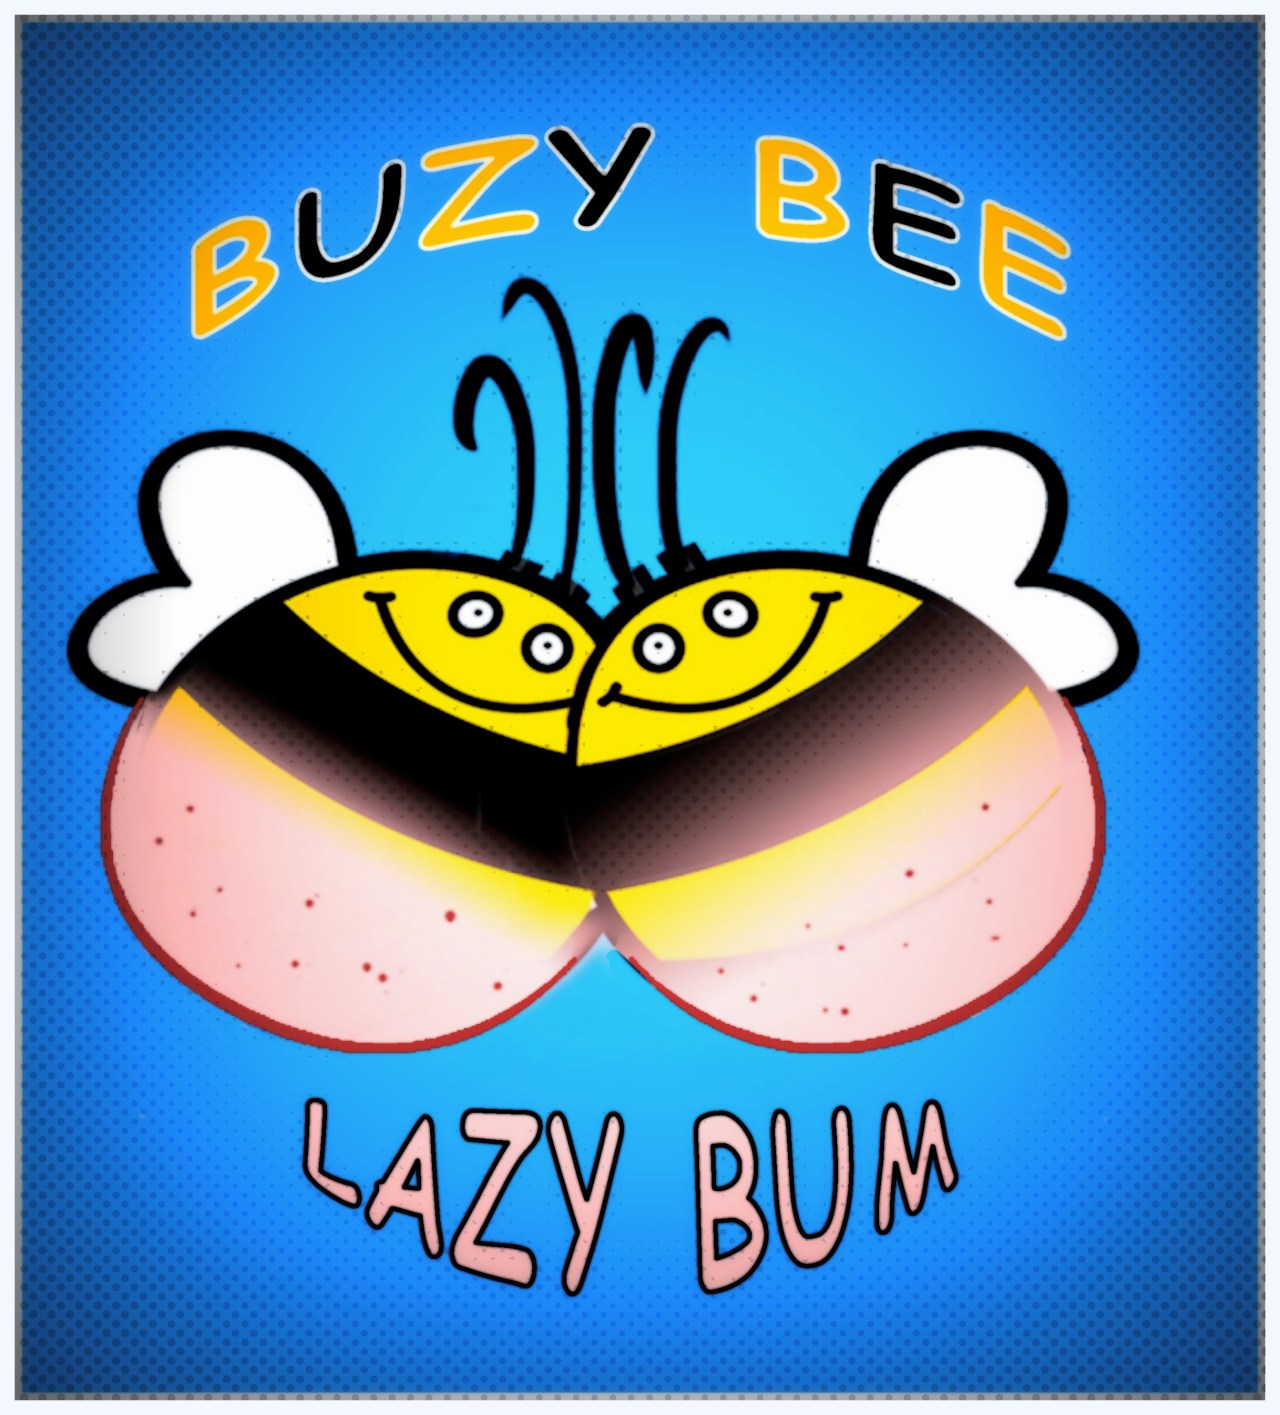 Its been 3 months…..buzy B or Lazy B?